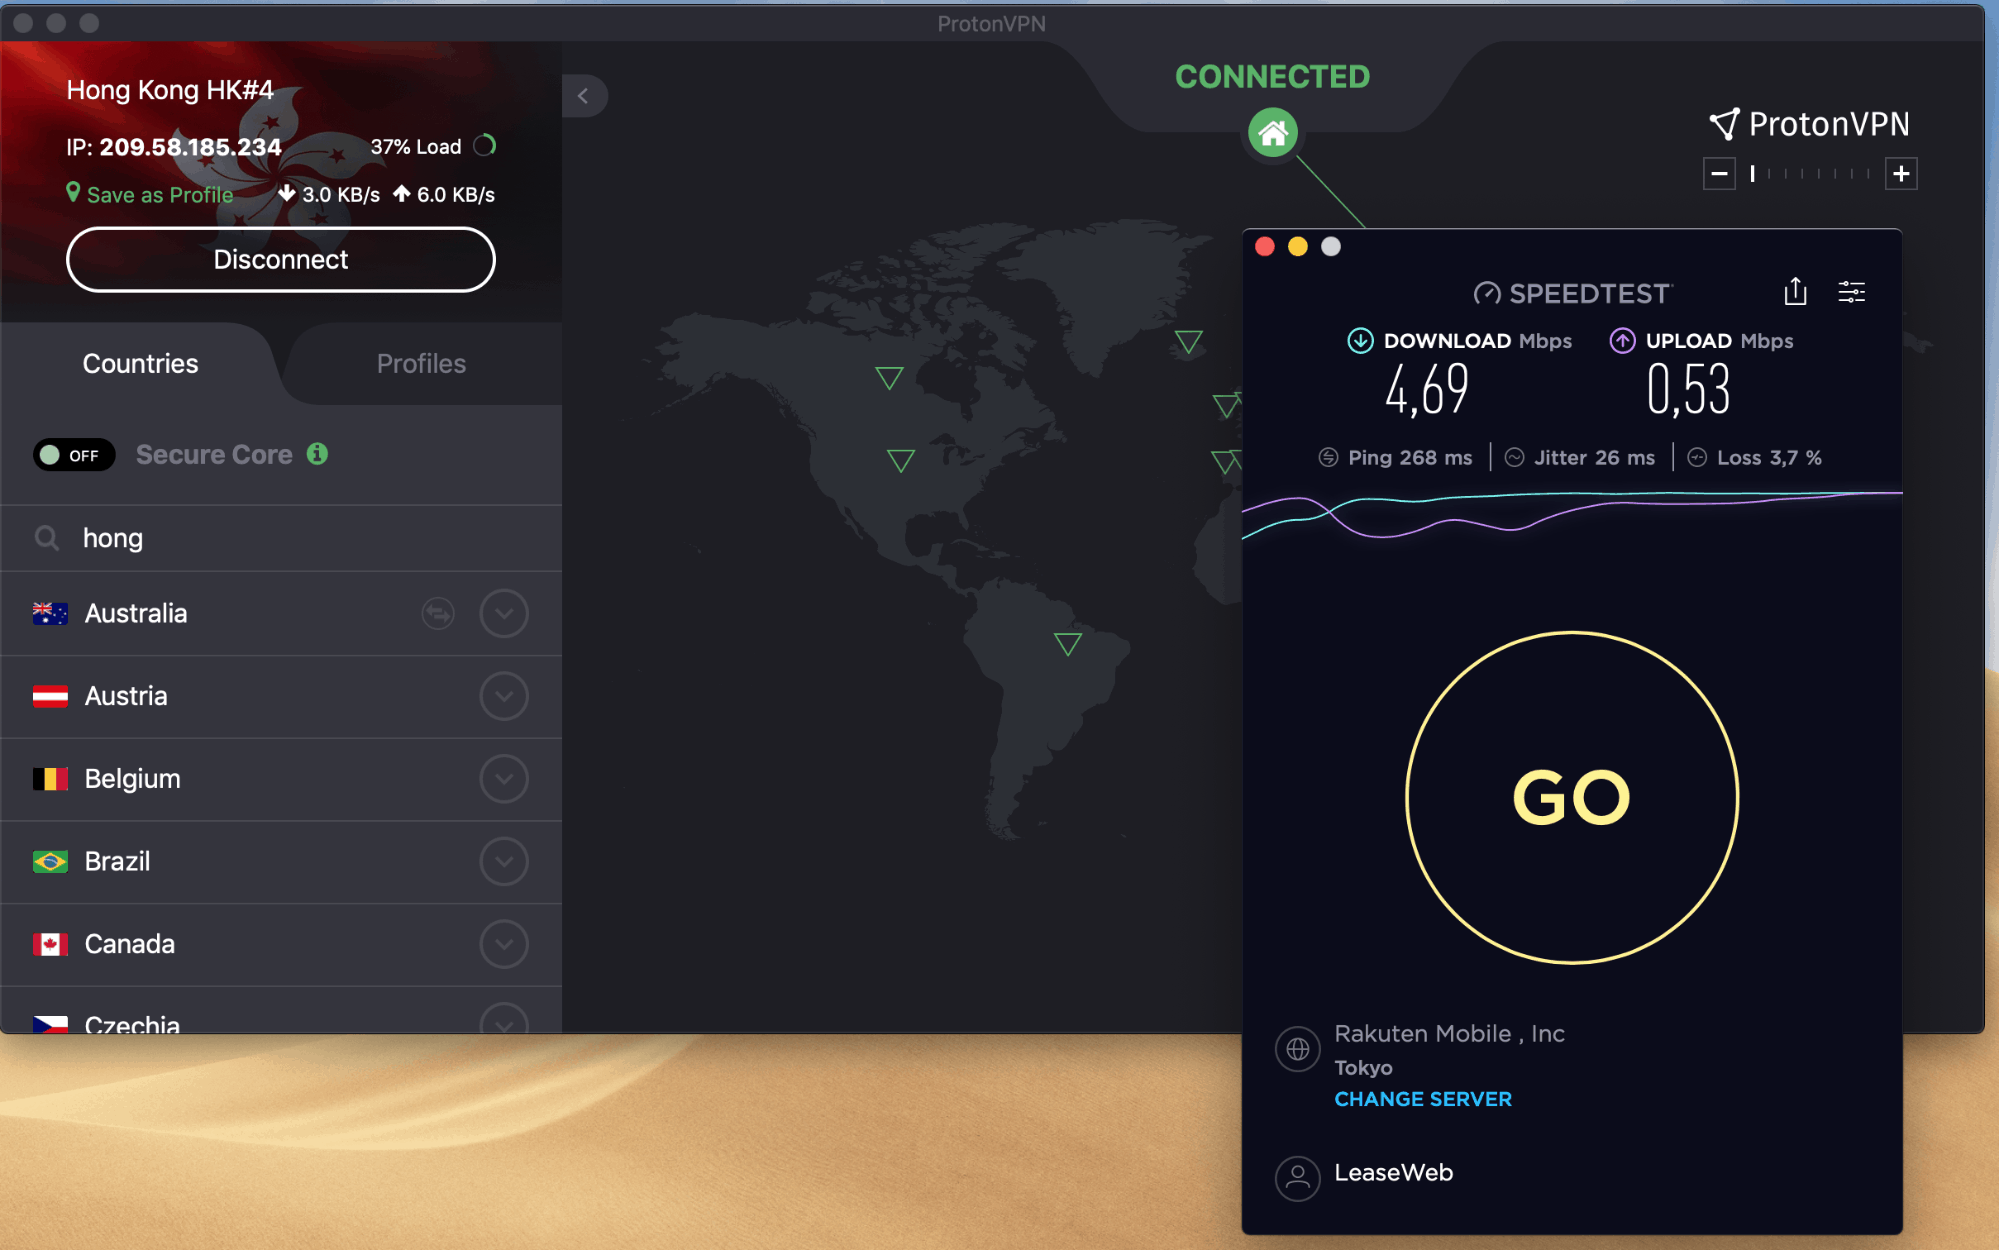 protonvpn speed test from china on unicom